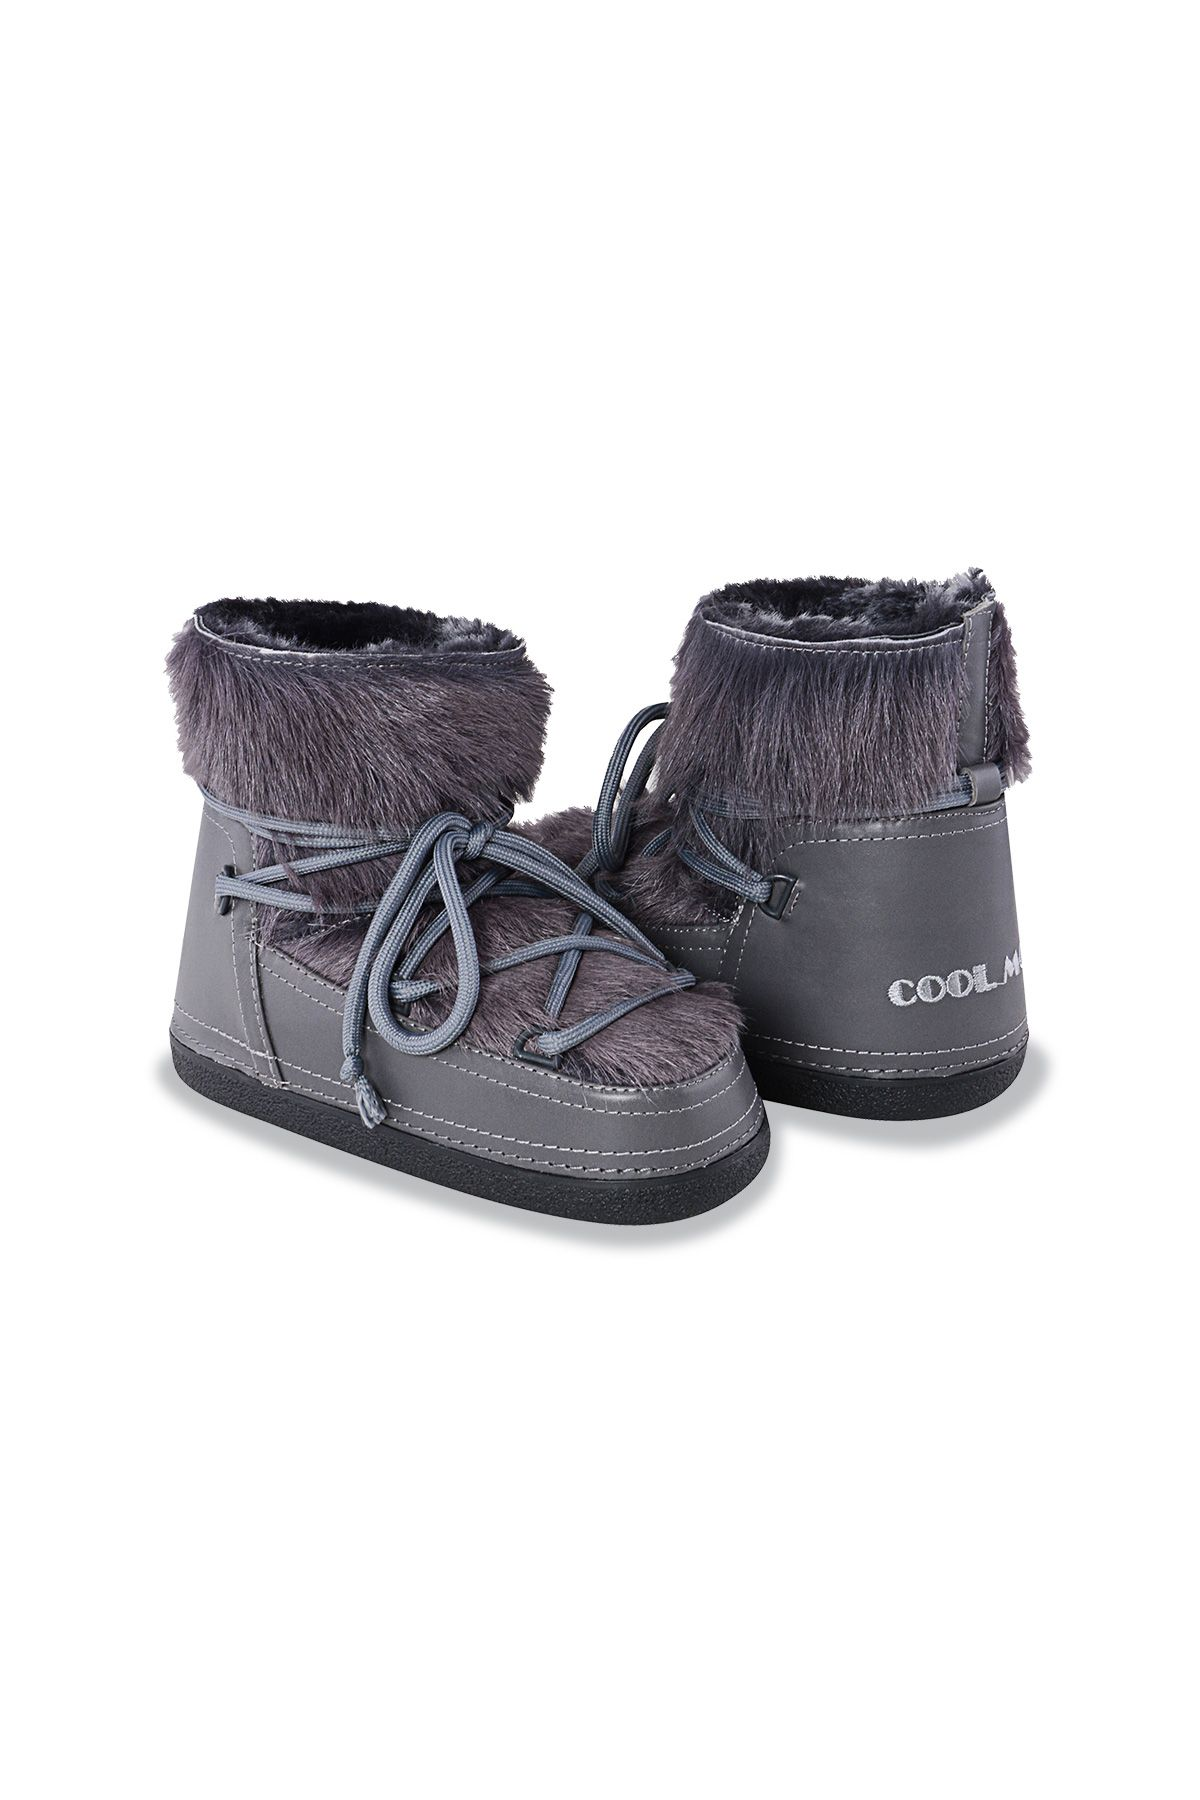 Cool Moon Moonboots From Genuine Sheepskin With Toscana Fur Gray